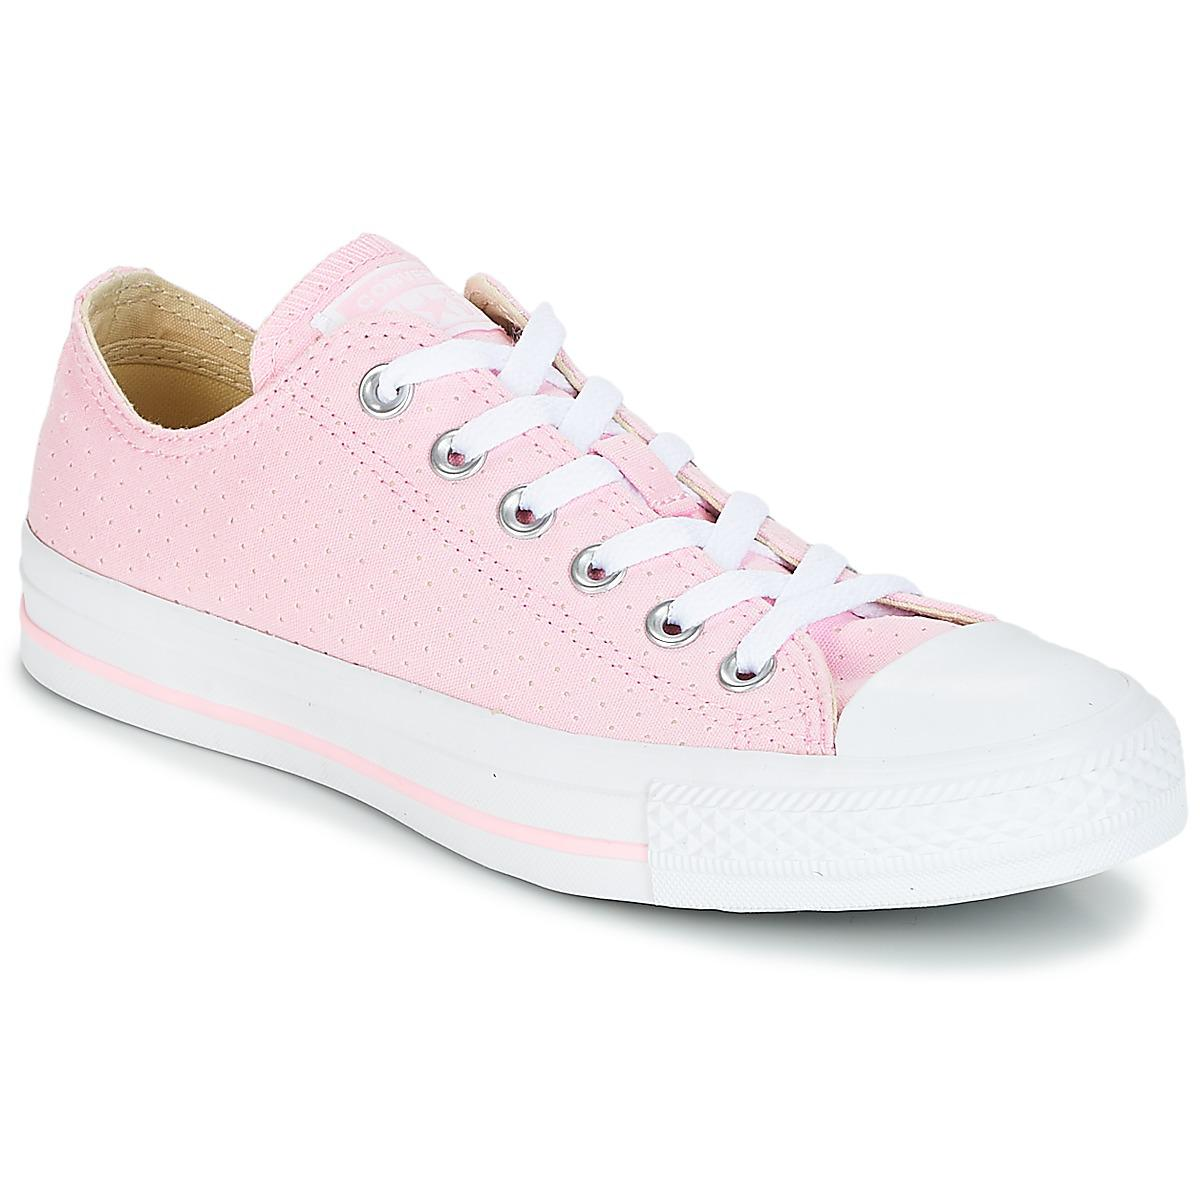 a950afbf0dfc Converse Chuck Taylor All Star-ox Shoes (trainers) in Pink - Lyst